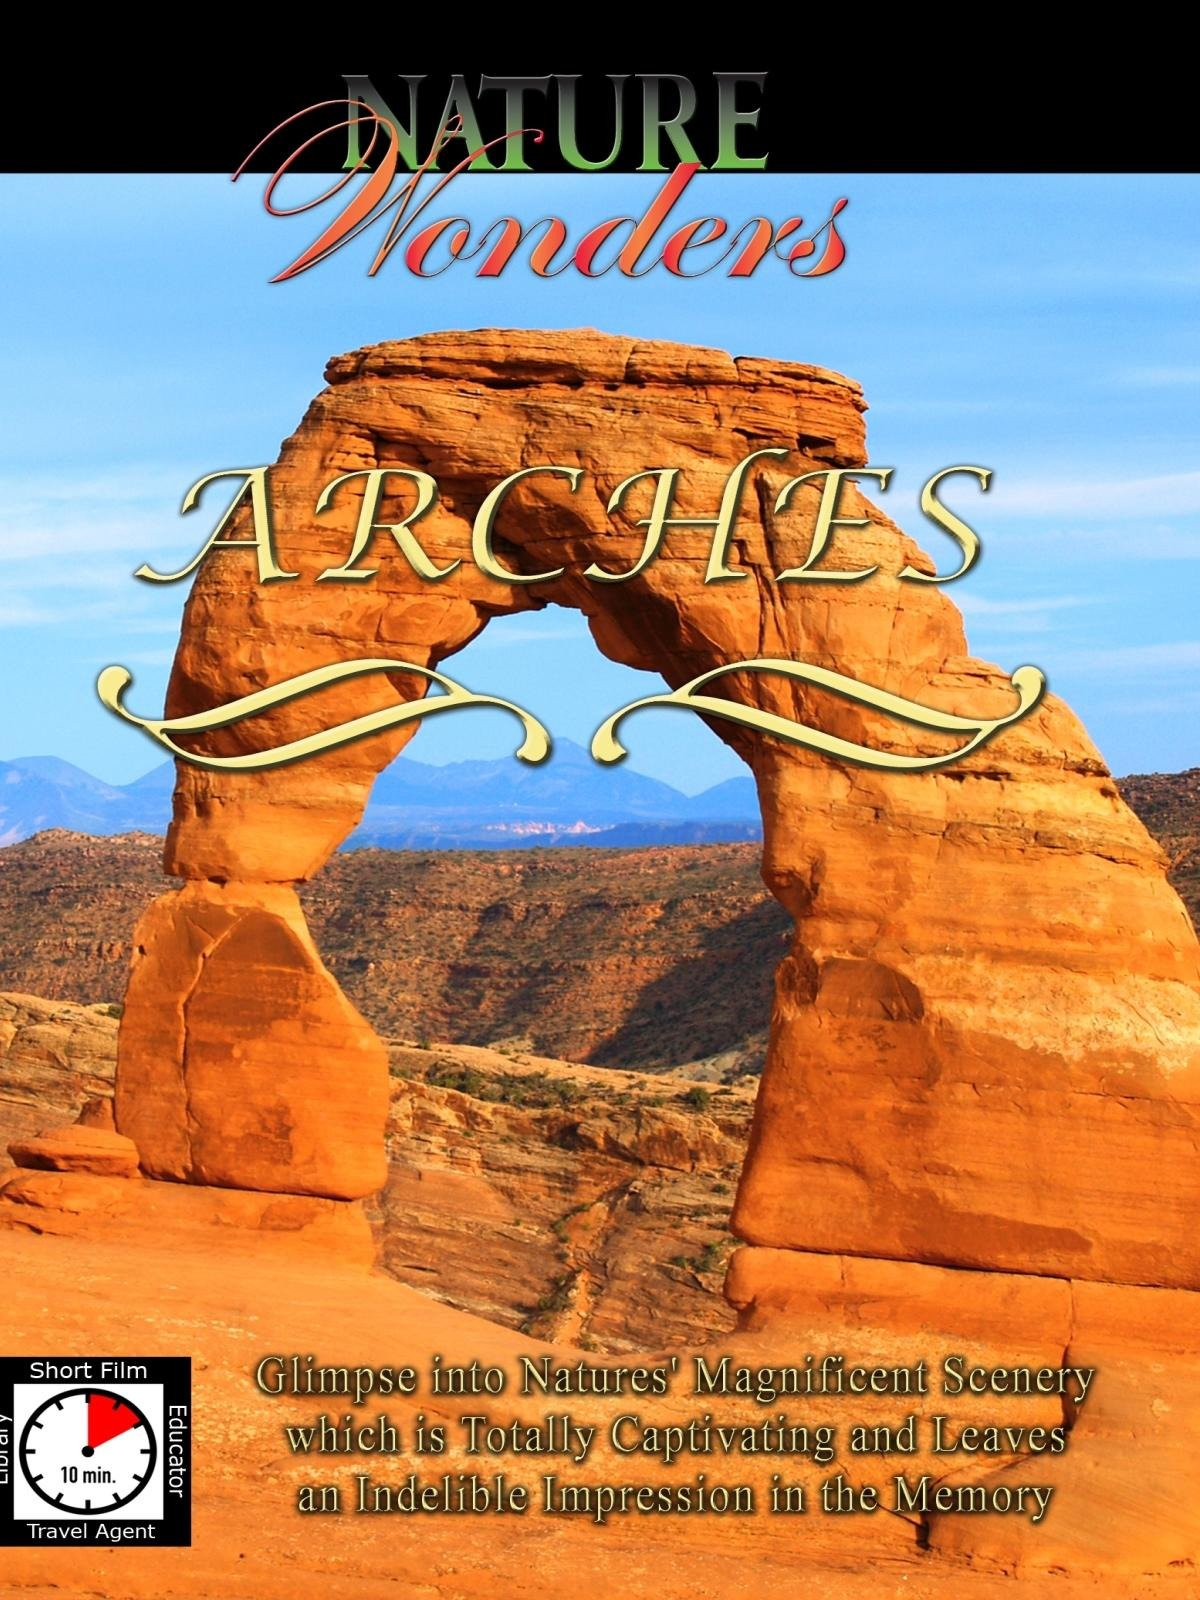 Nature Wonders - Arches - Utah - U.S.A. on Amazon Prime Instant Video UK